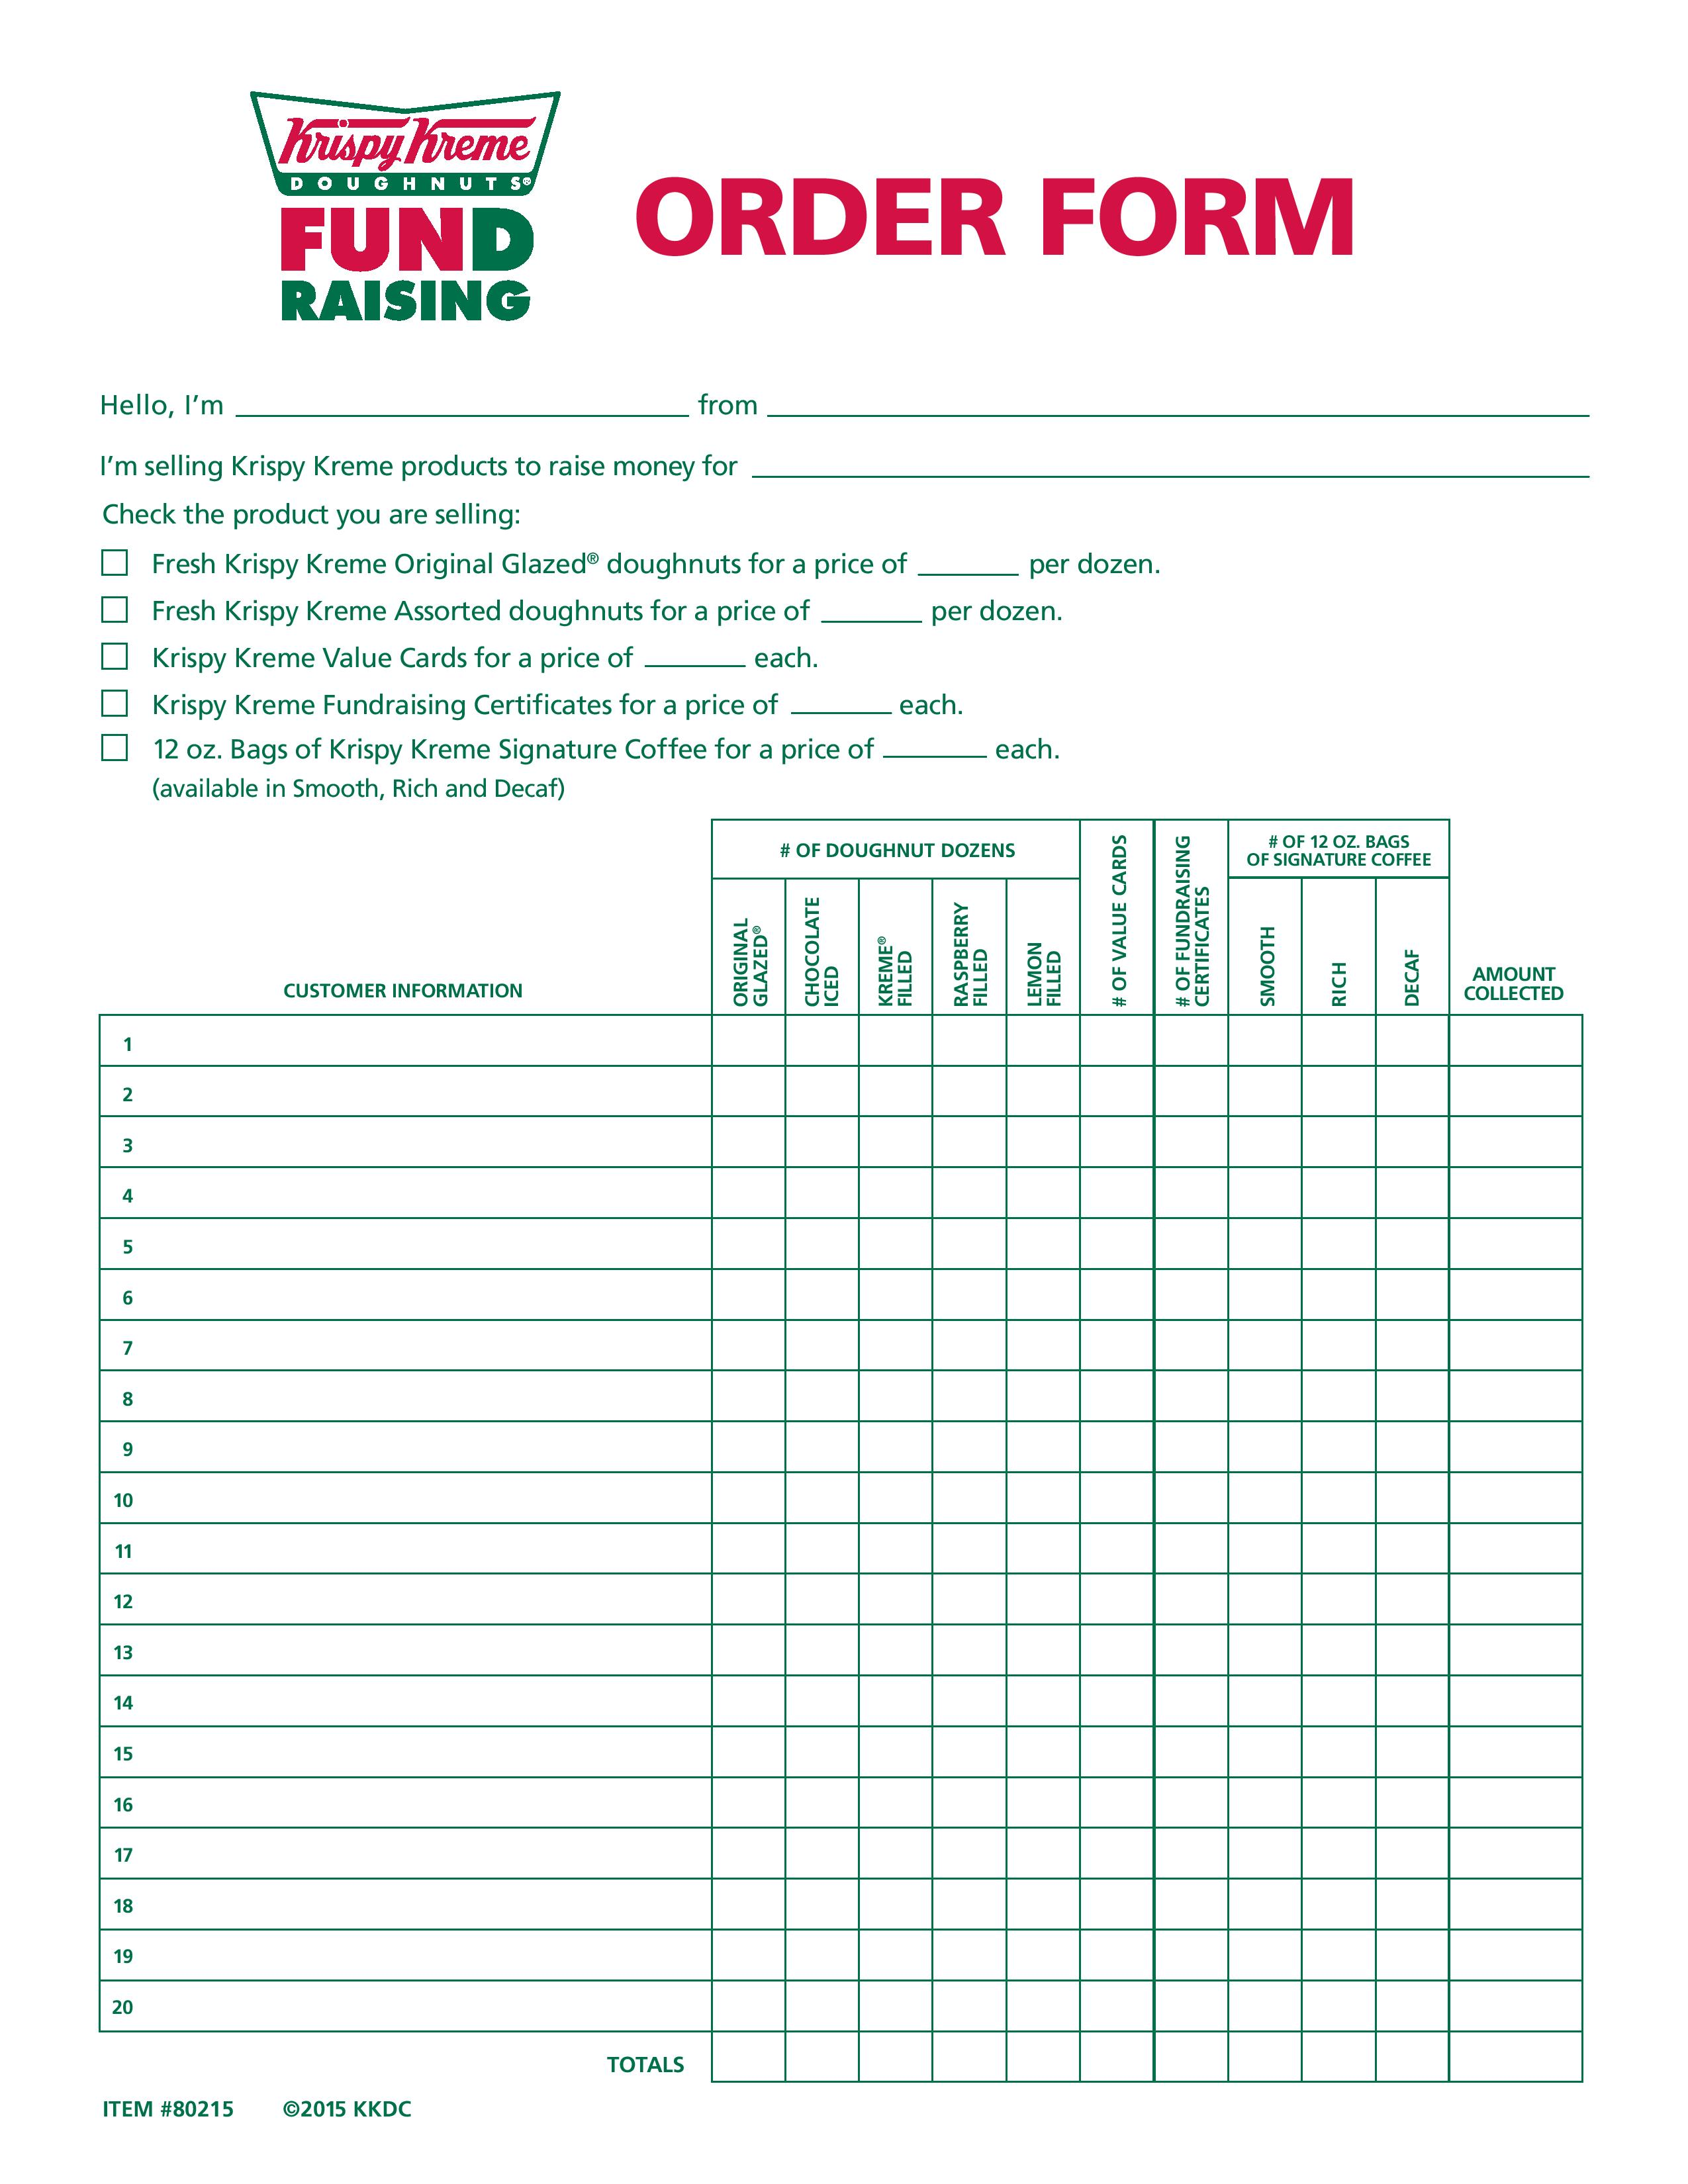 5 Ways To Raise Funds Form Krispy Kreme